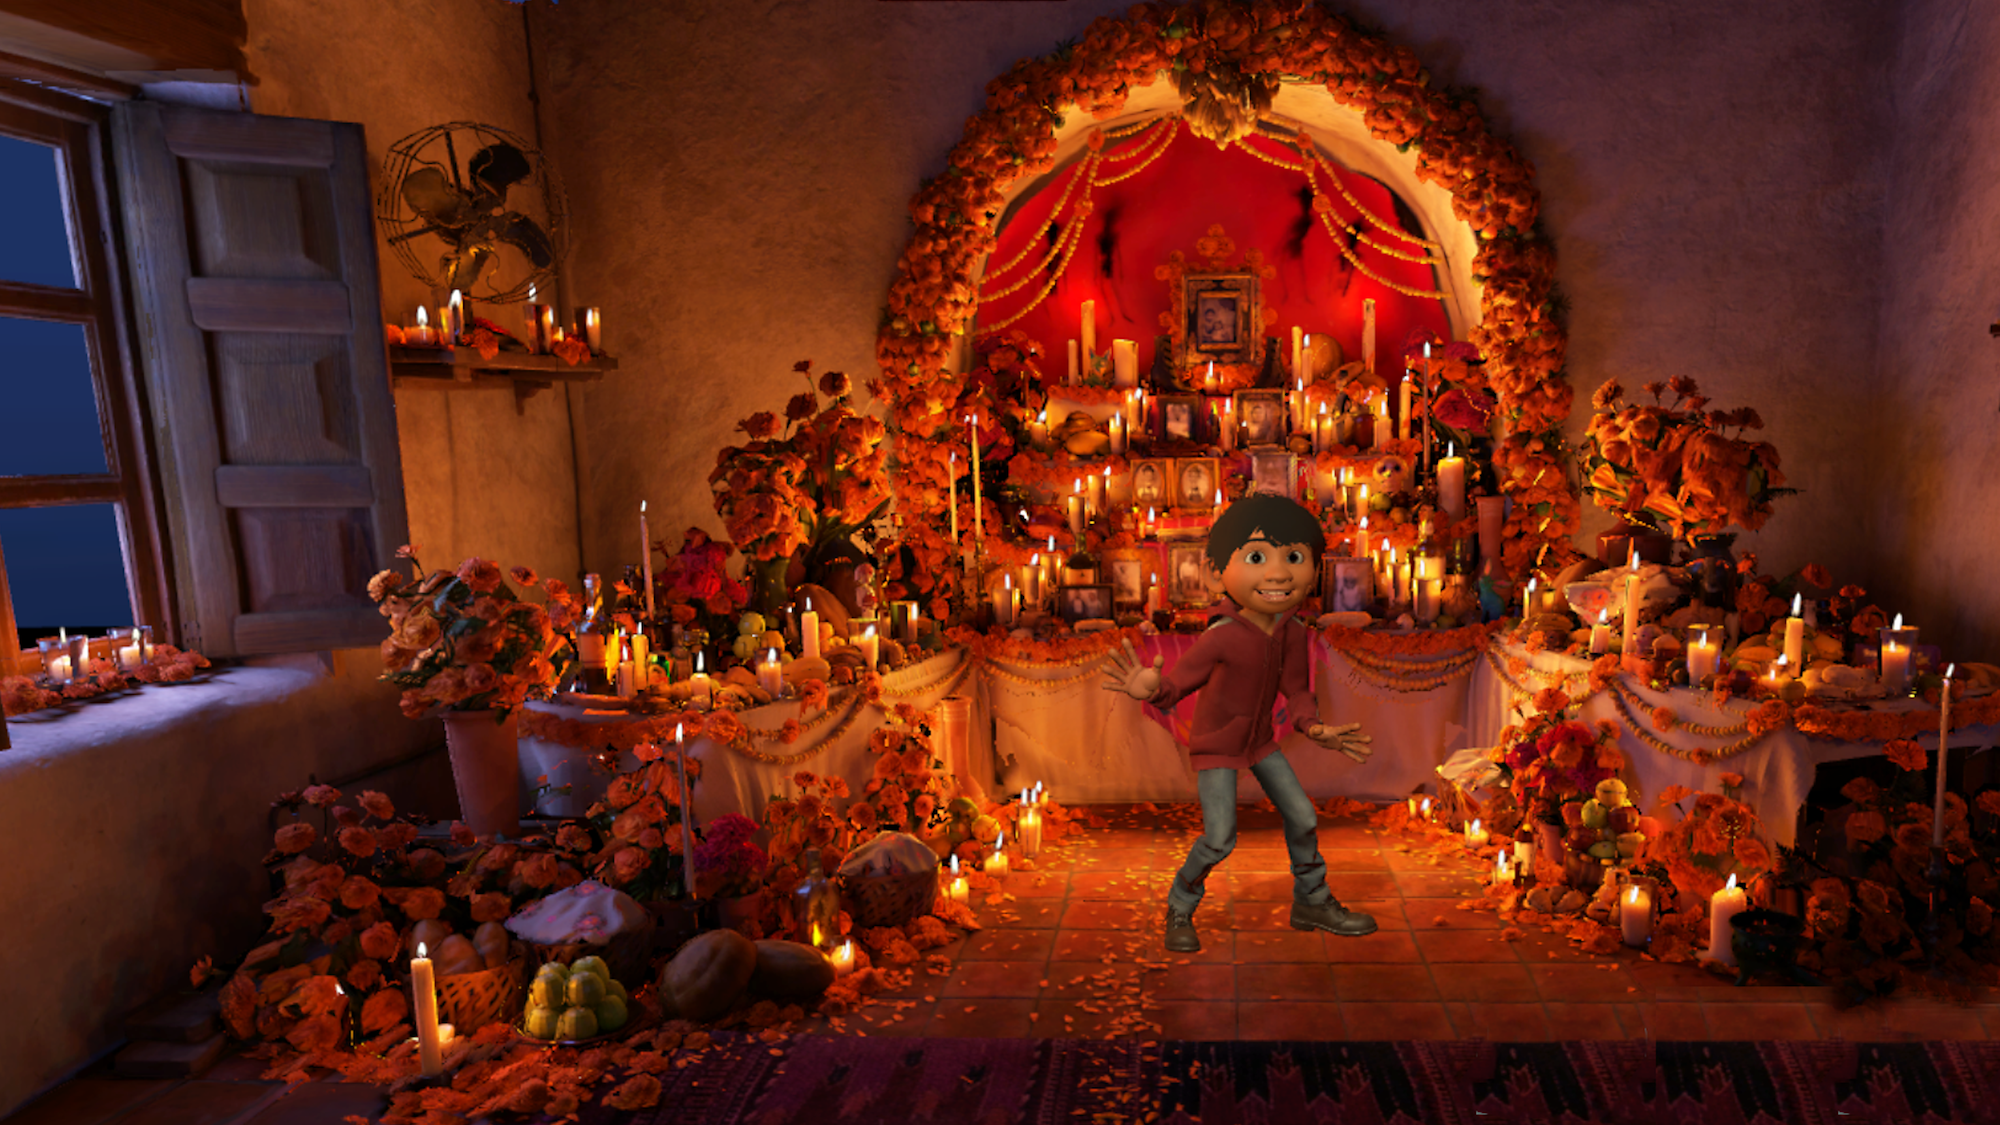 Pixars vr debut takes you inside the entrancing world of coco you can still experience coco vr solo but as pixar describes its really meant to be enjoyed with other people the rift accommodates up to 4 players stopboris Image collections